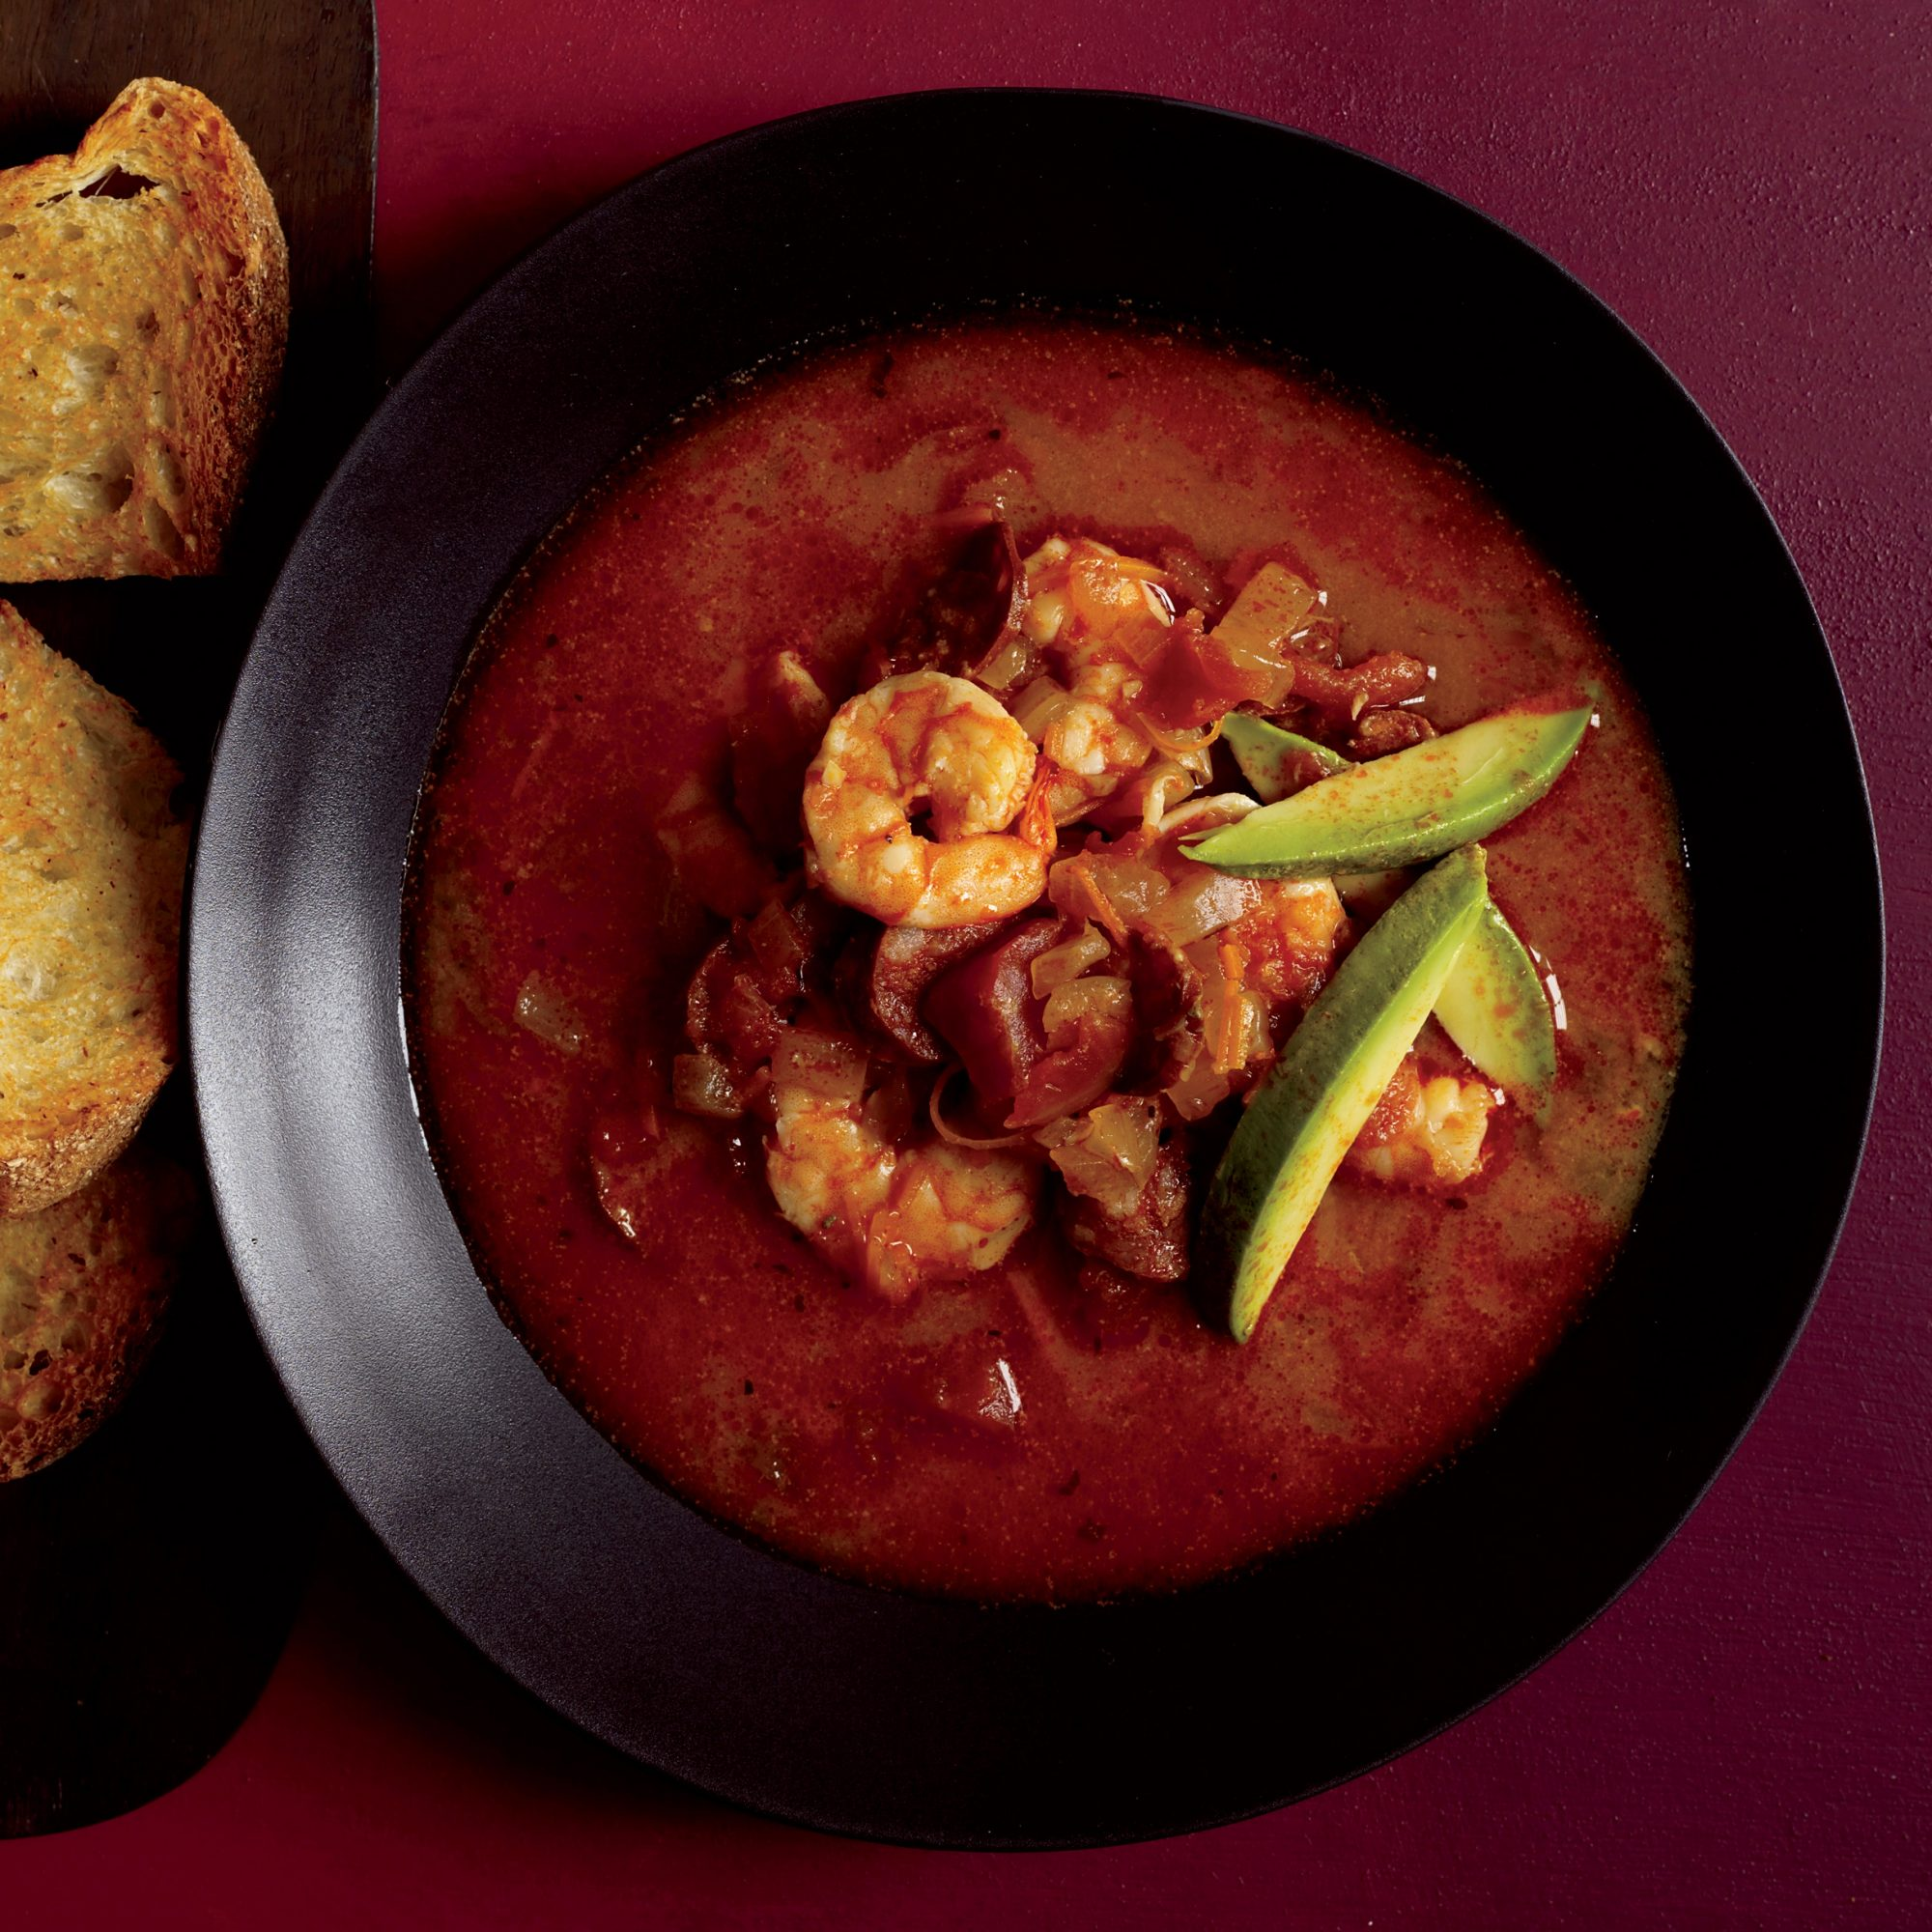 200910-r-shrimp-chorizo-soup.jpg